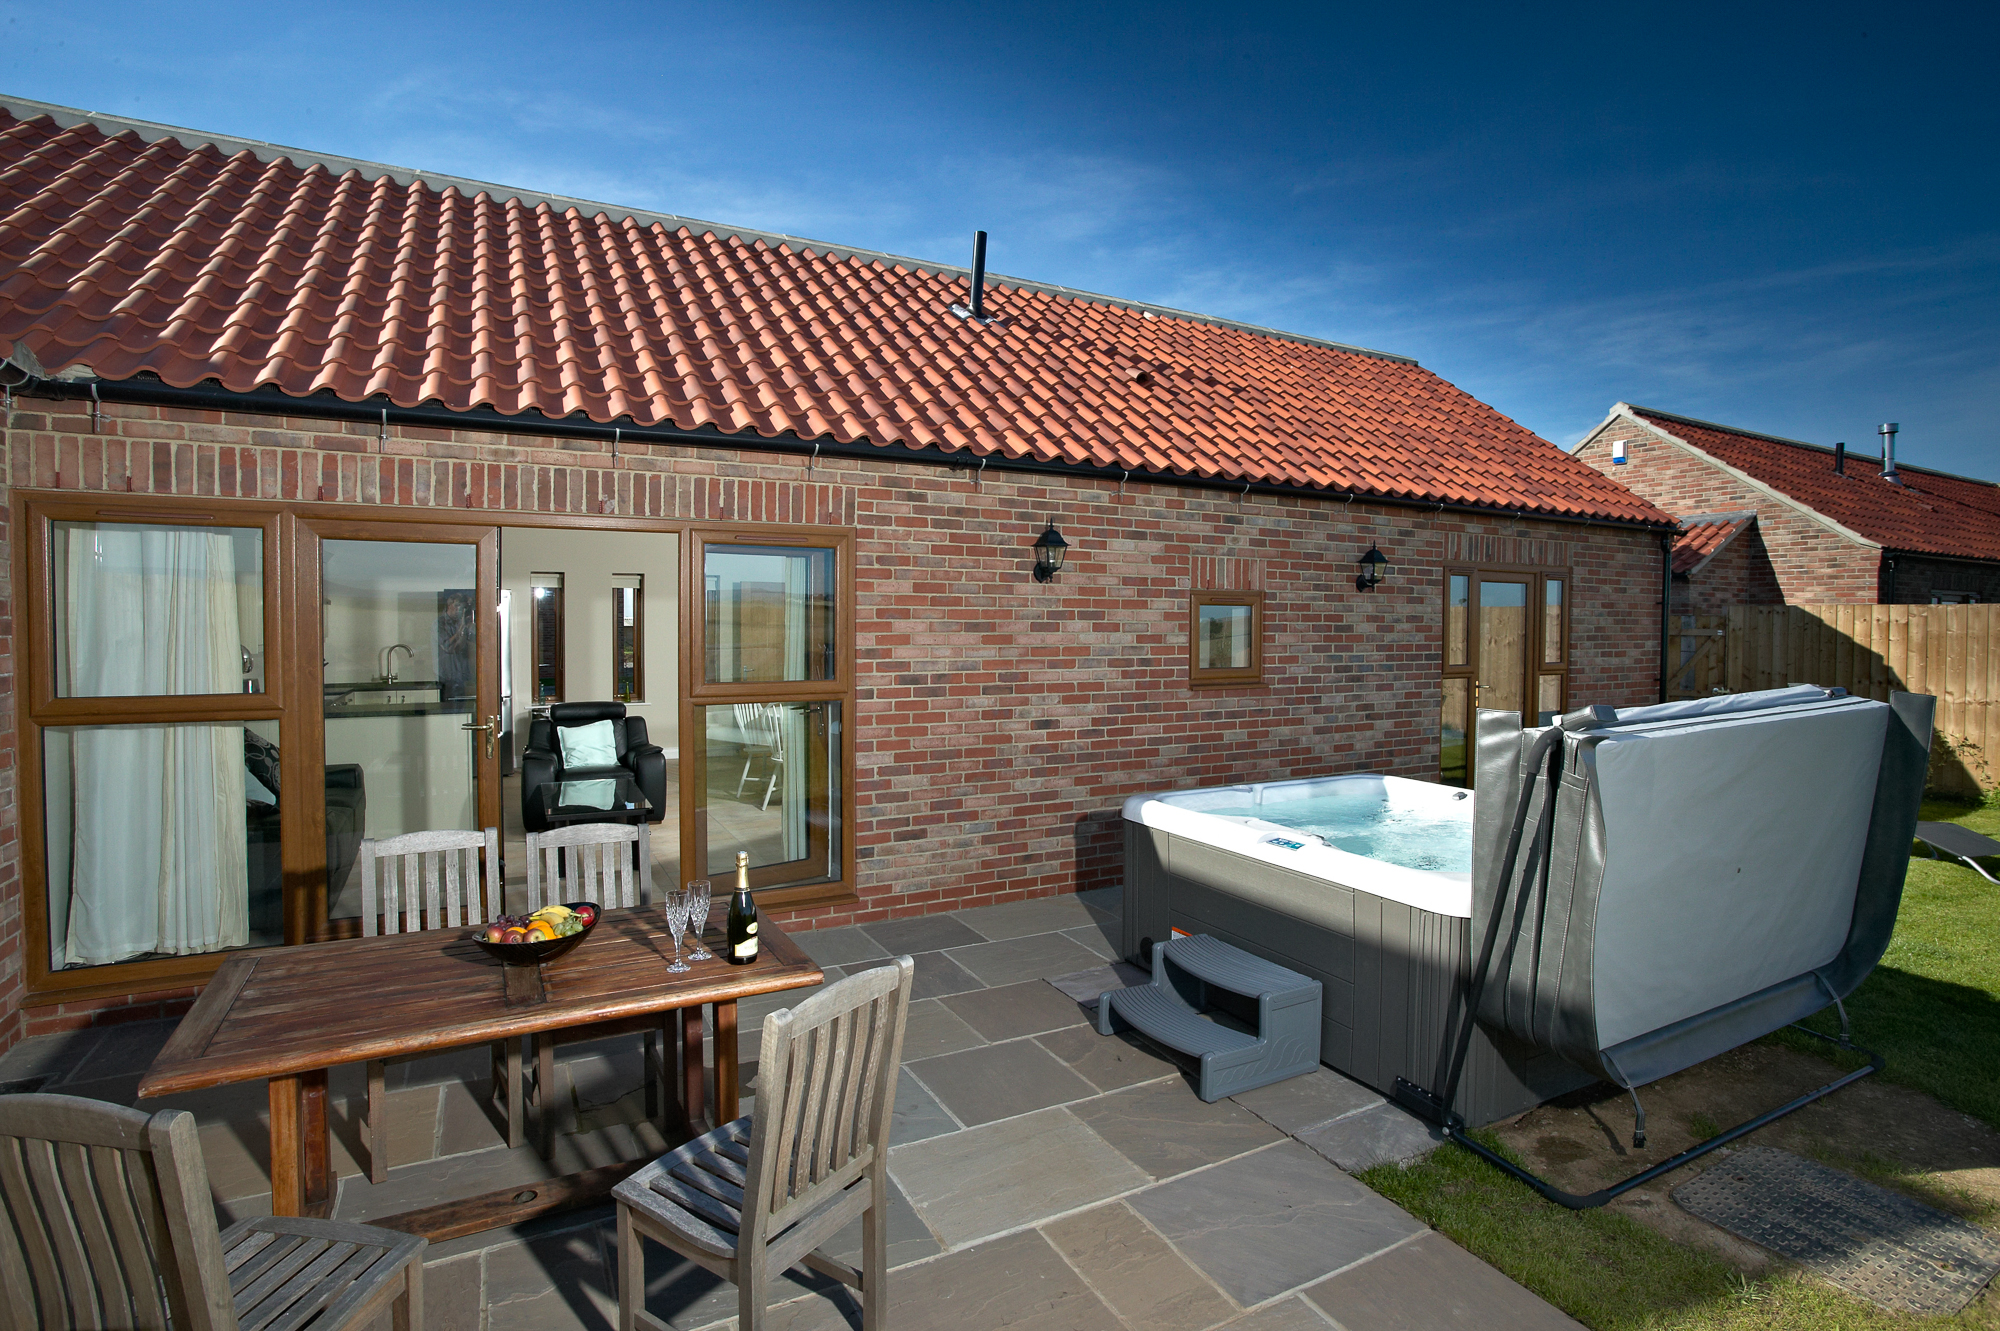 Contemporary Yorkshire Cottages Hot Tub Acacia Cottages